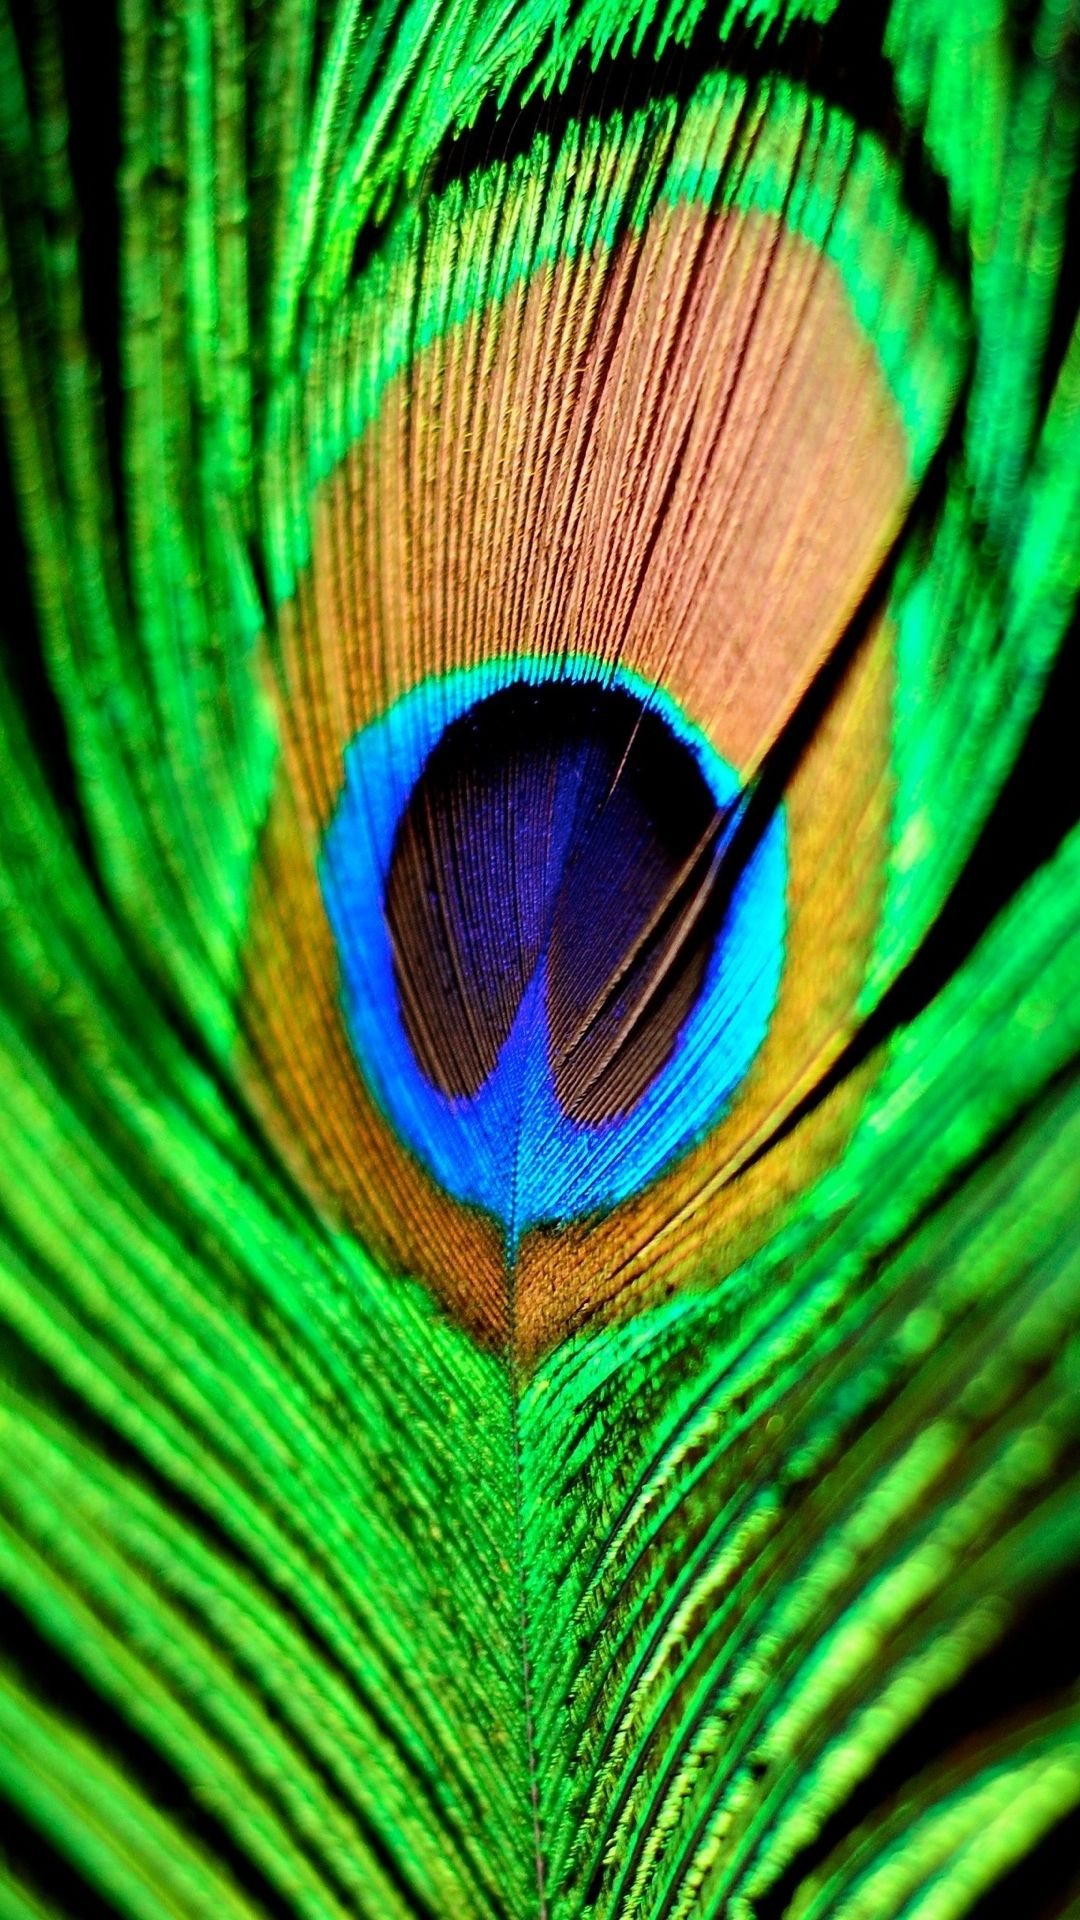 Peacock Feather Green Blue Iphone 6 Plus Hd Wallpaper Feather Wallpaper Iphone Feather Wallpaper Hd Wallpaper Iphone